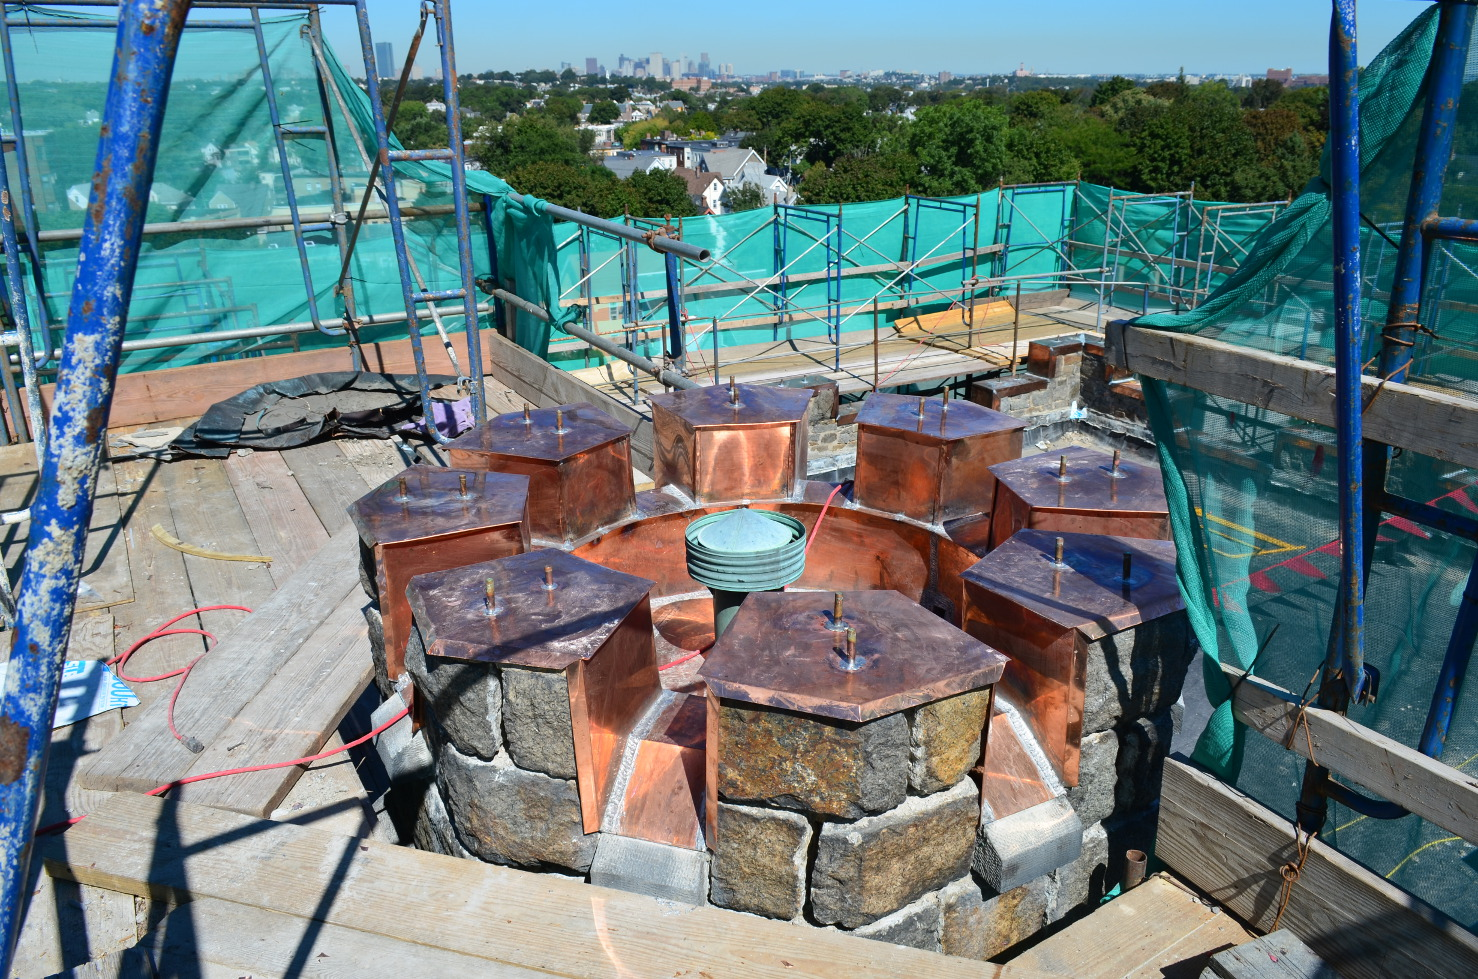 Crenelated stair tower roof, photo credit:  Ashmont 2013